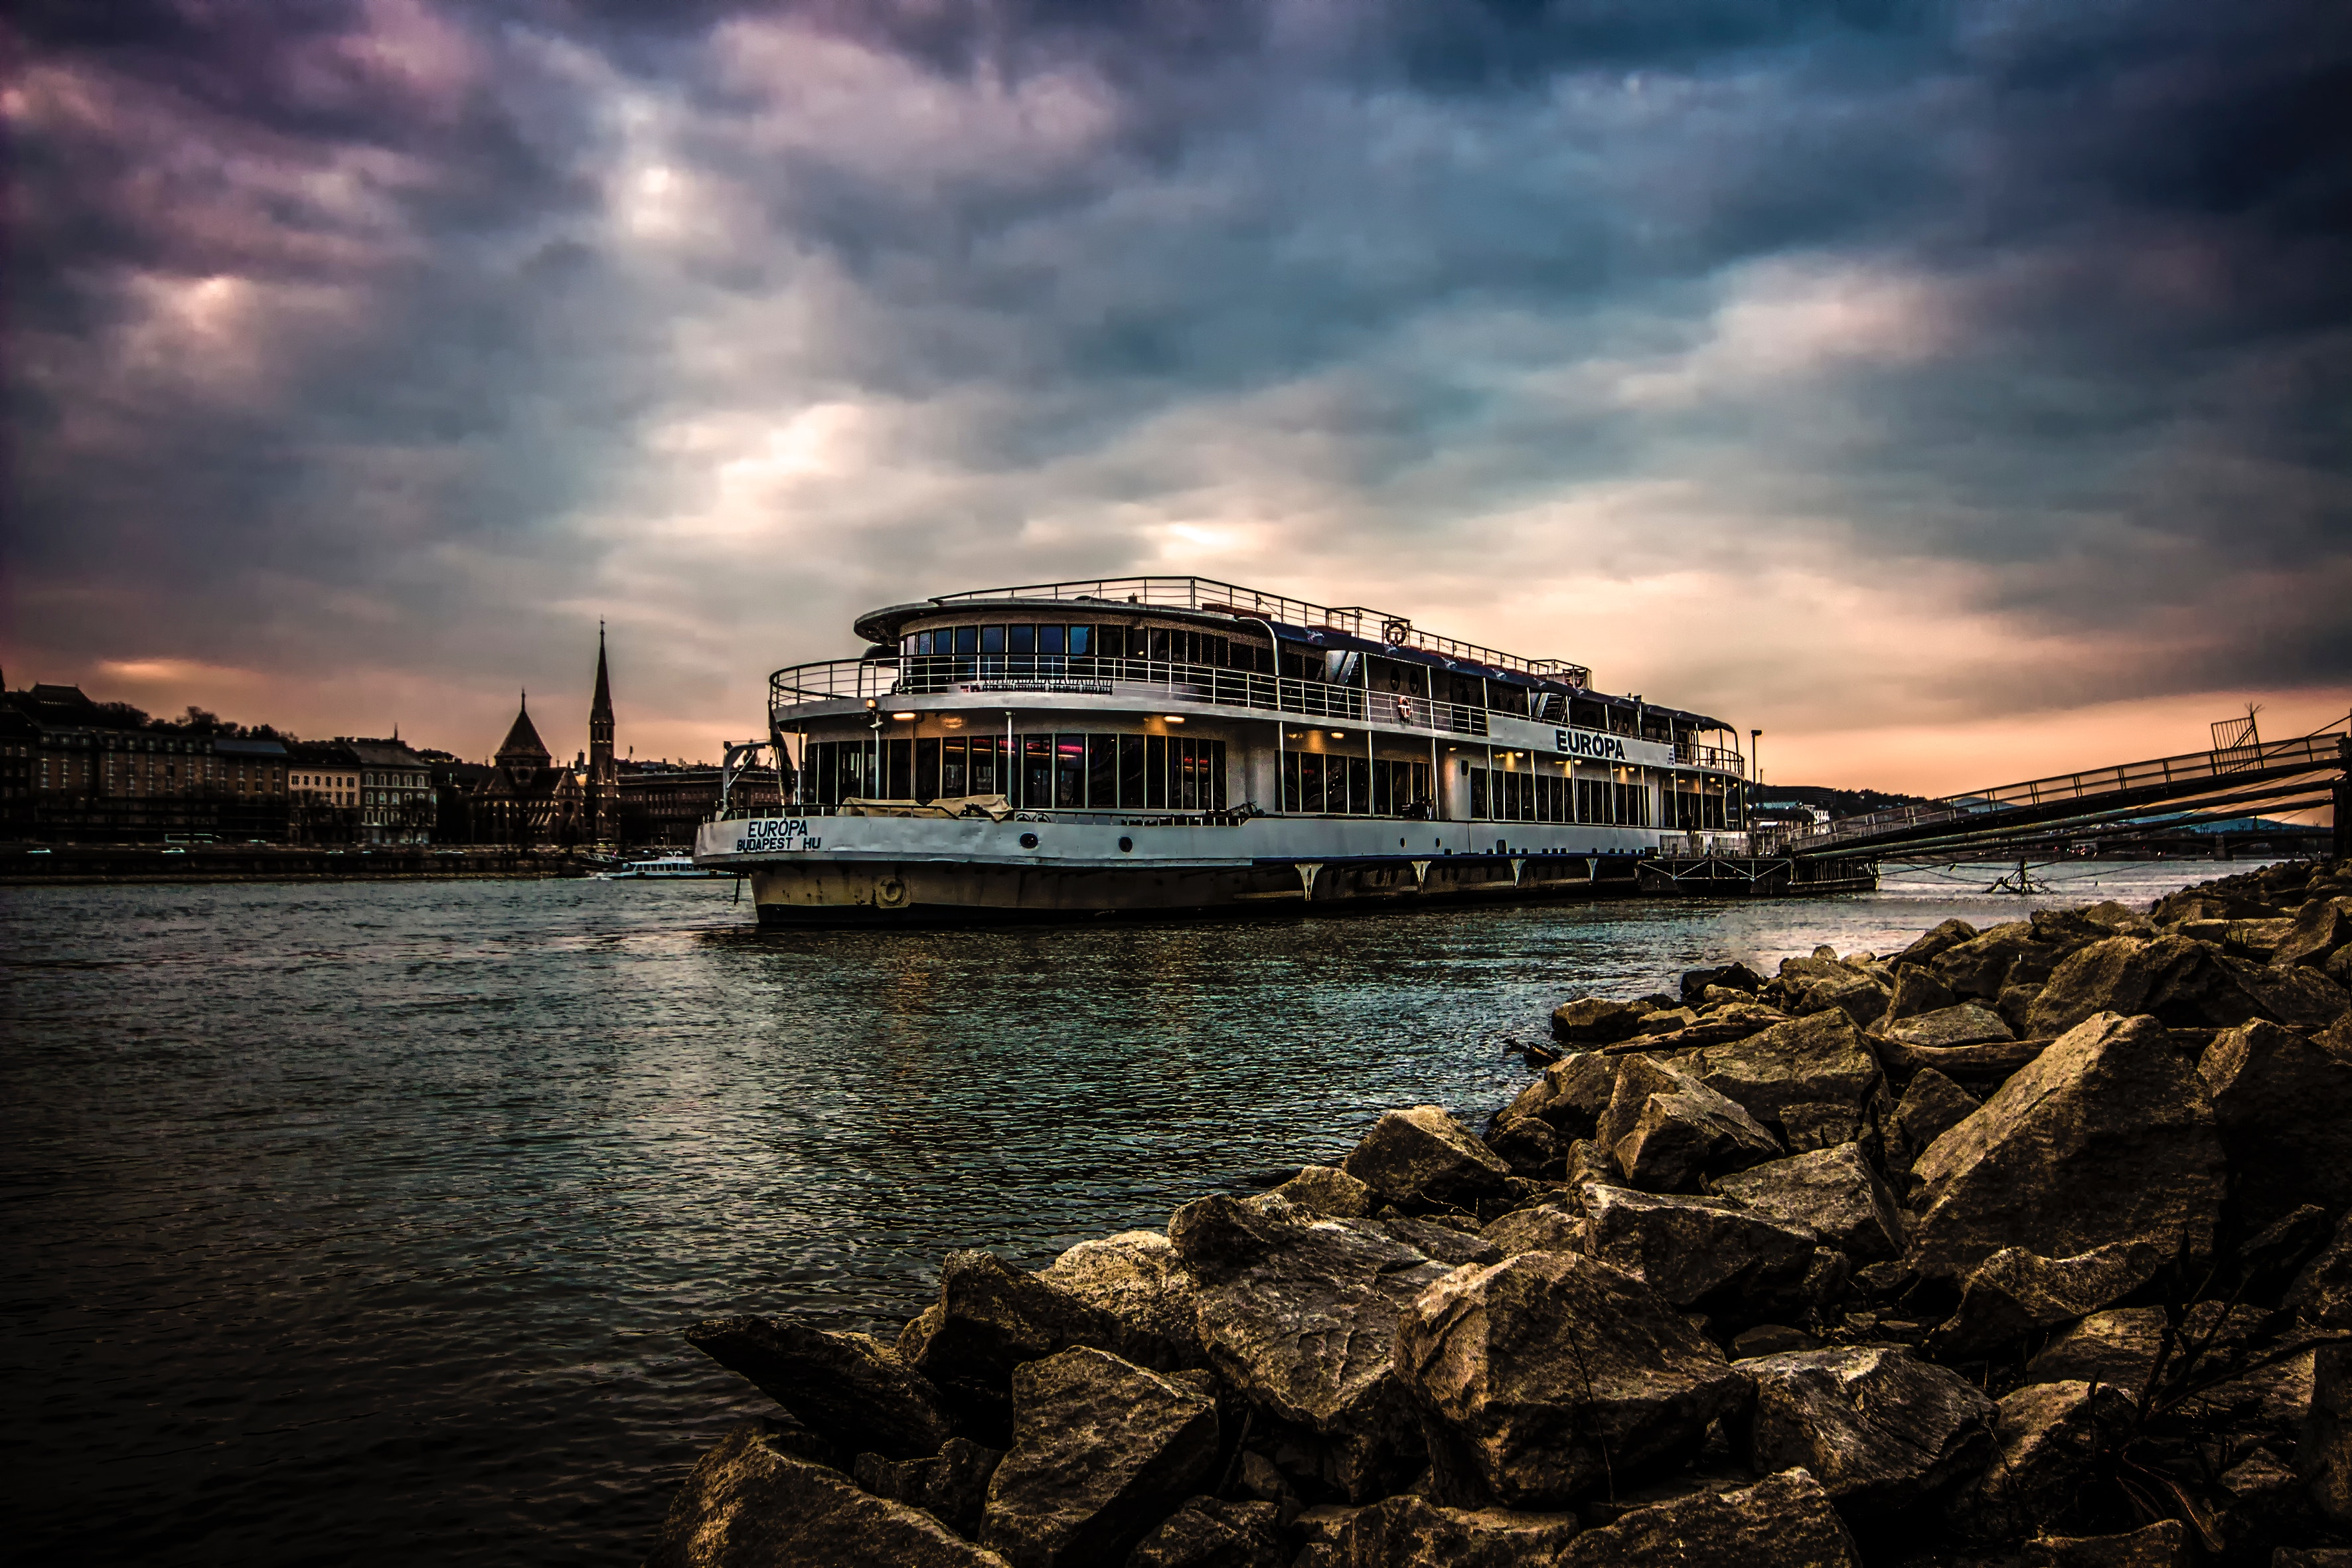 White ferry boat by rocky shore photo